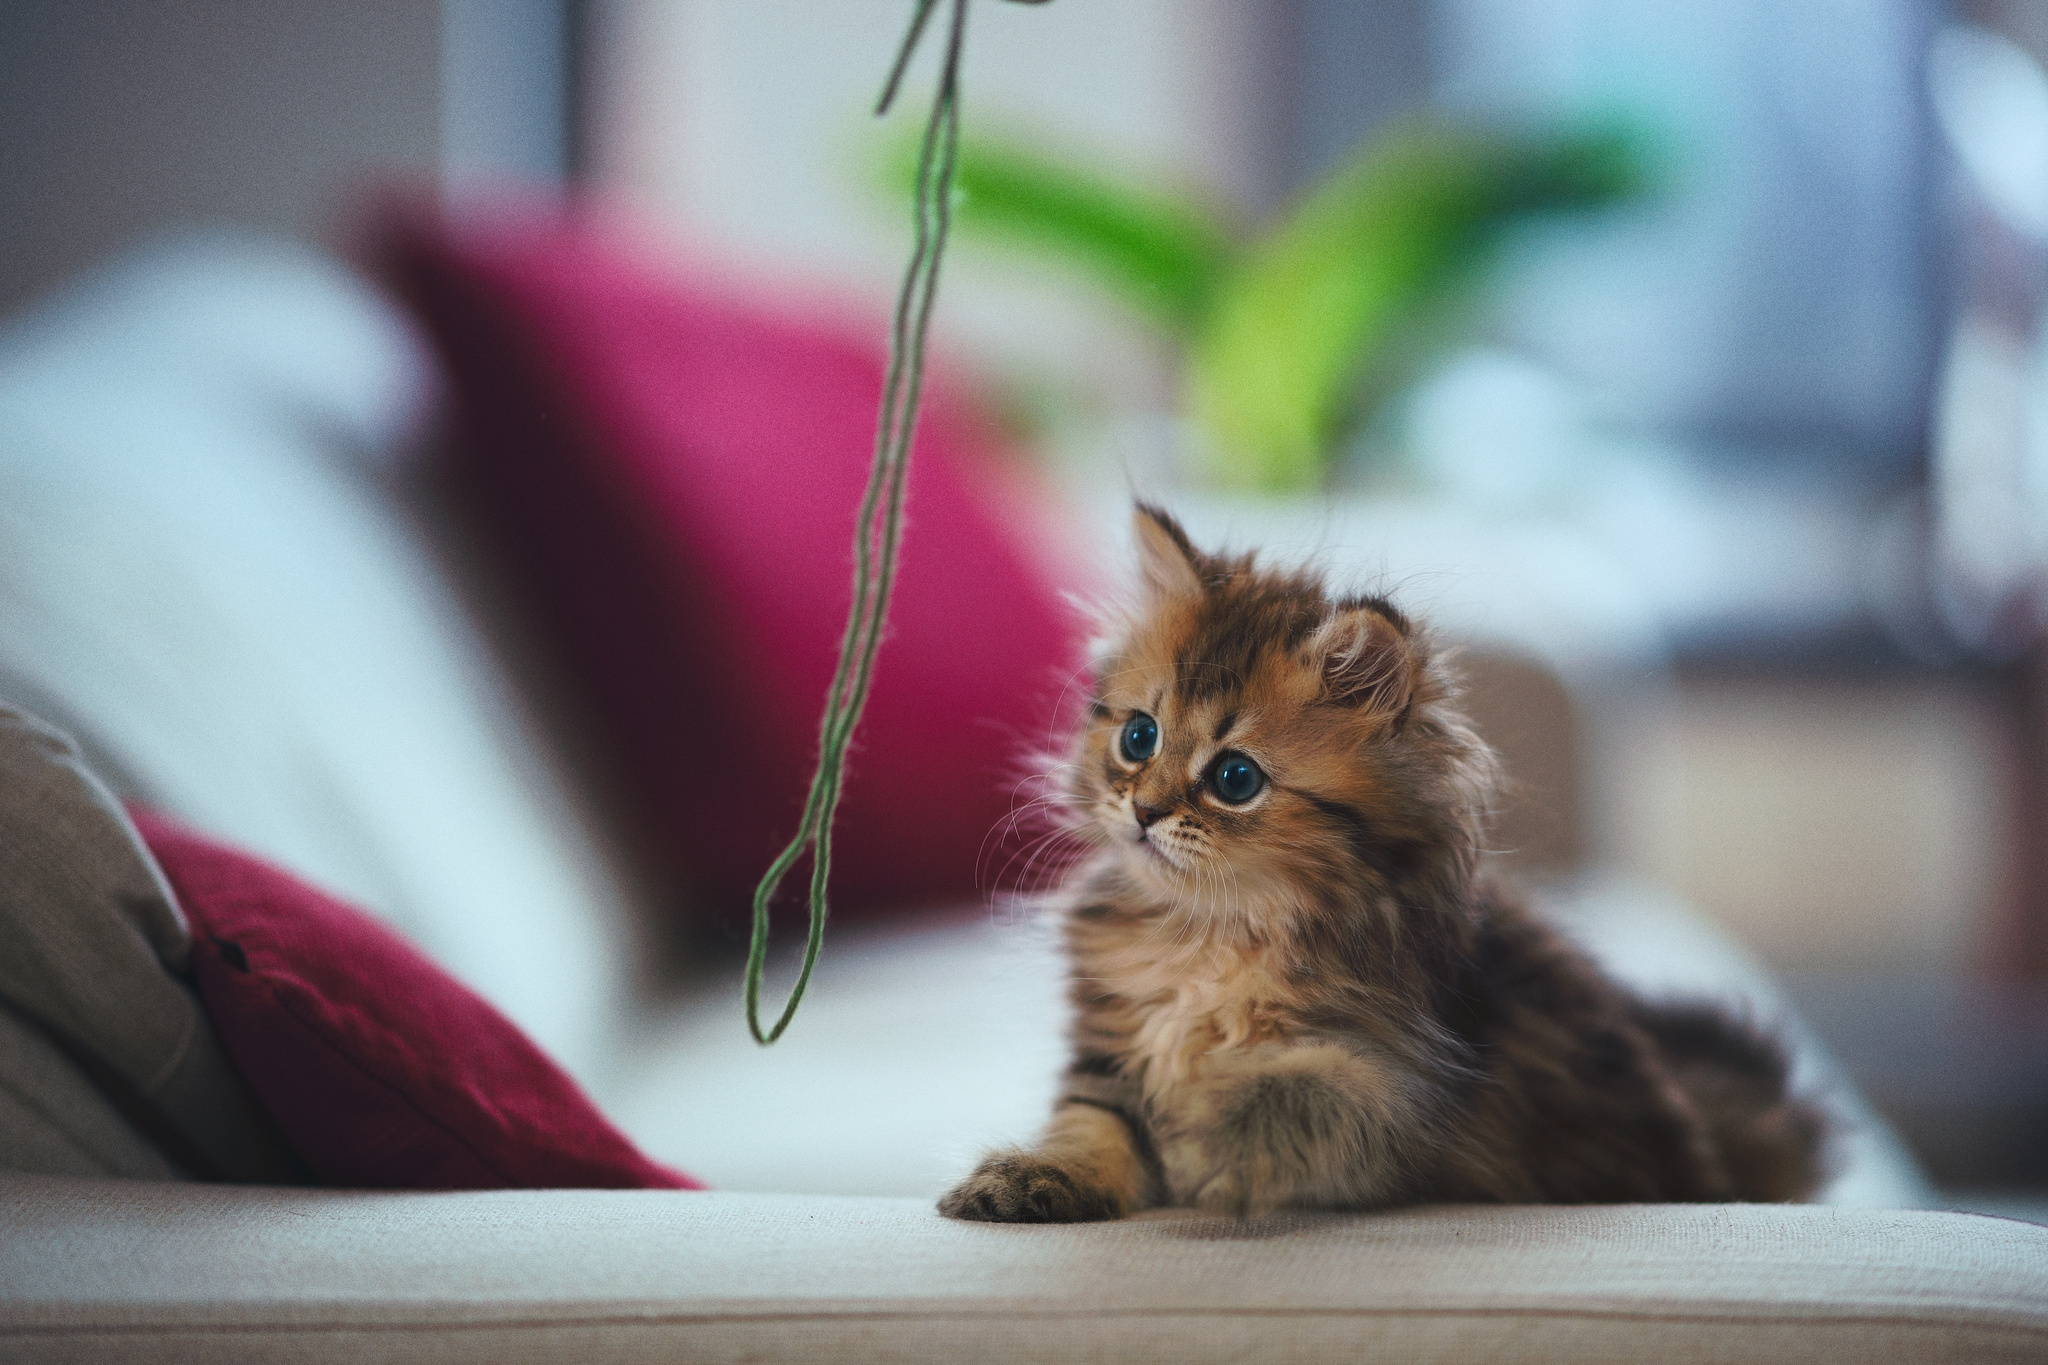 61243 Screensavers and Wallpapers Room for phone. Download Animals, Kitty, Kitten, Threads, Thread, Play, Kid, Tot, Fluffy, Room pictures for free